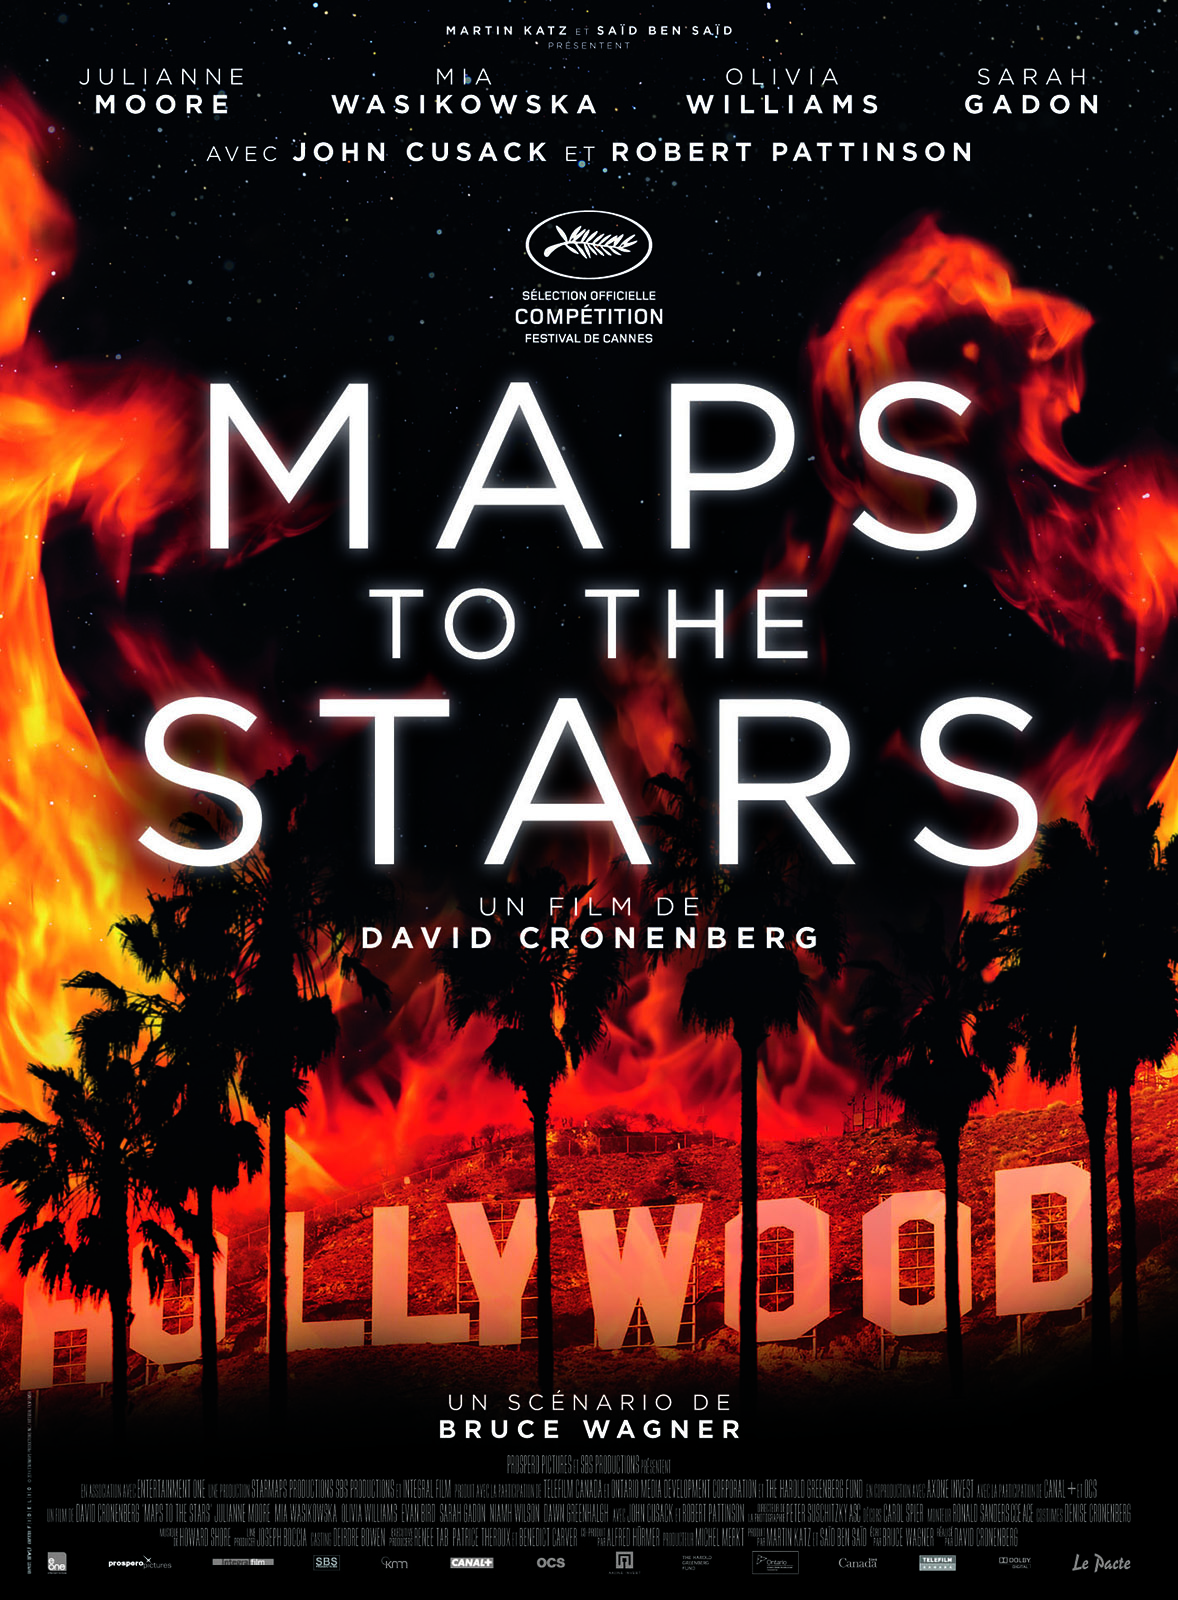 Maps to the stars - Affiche